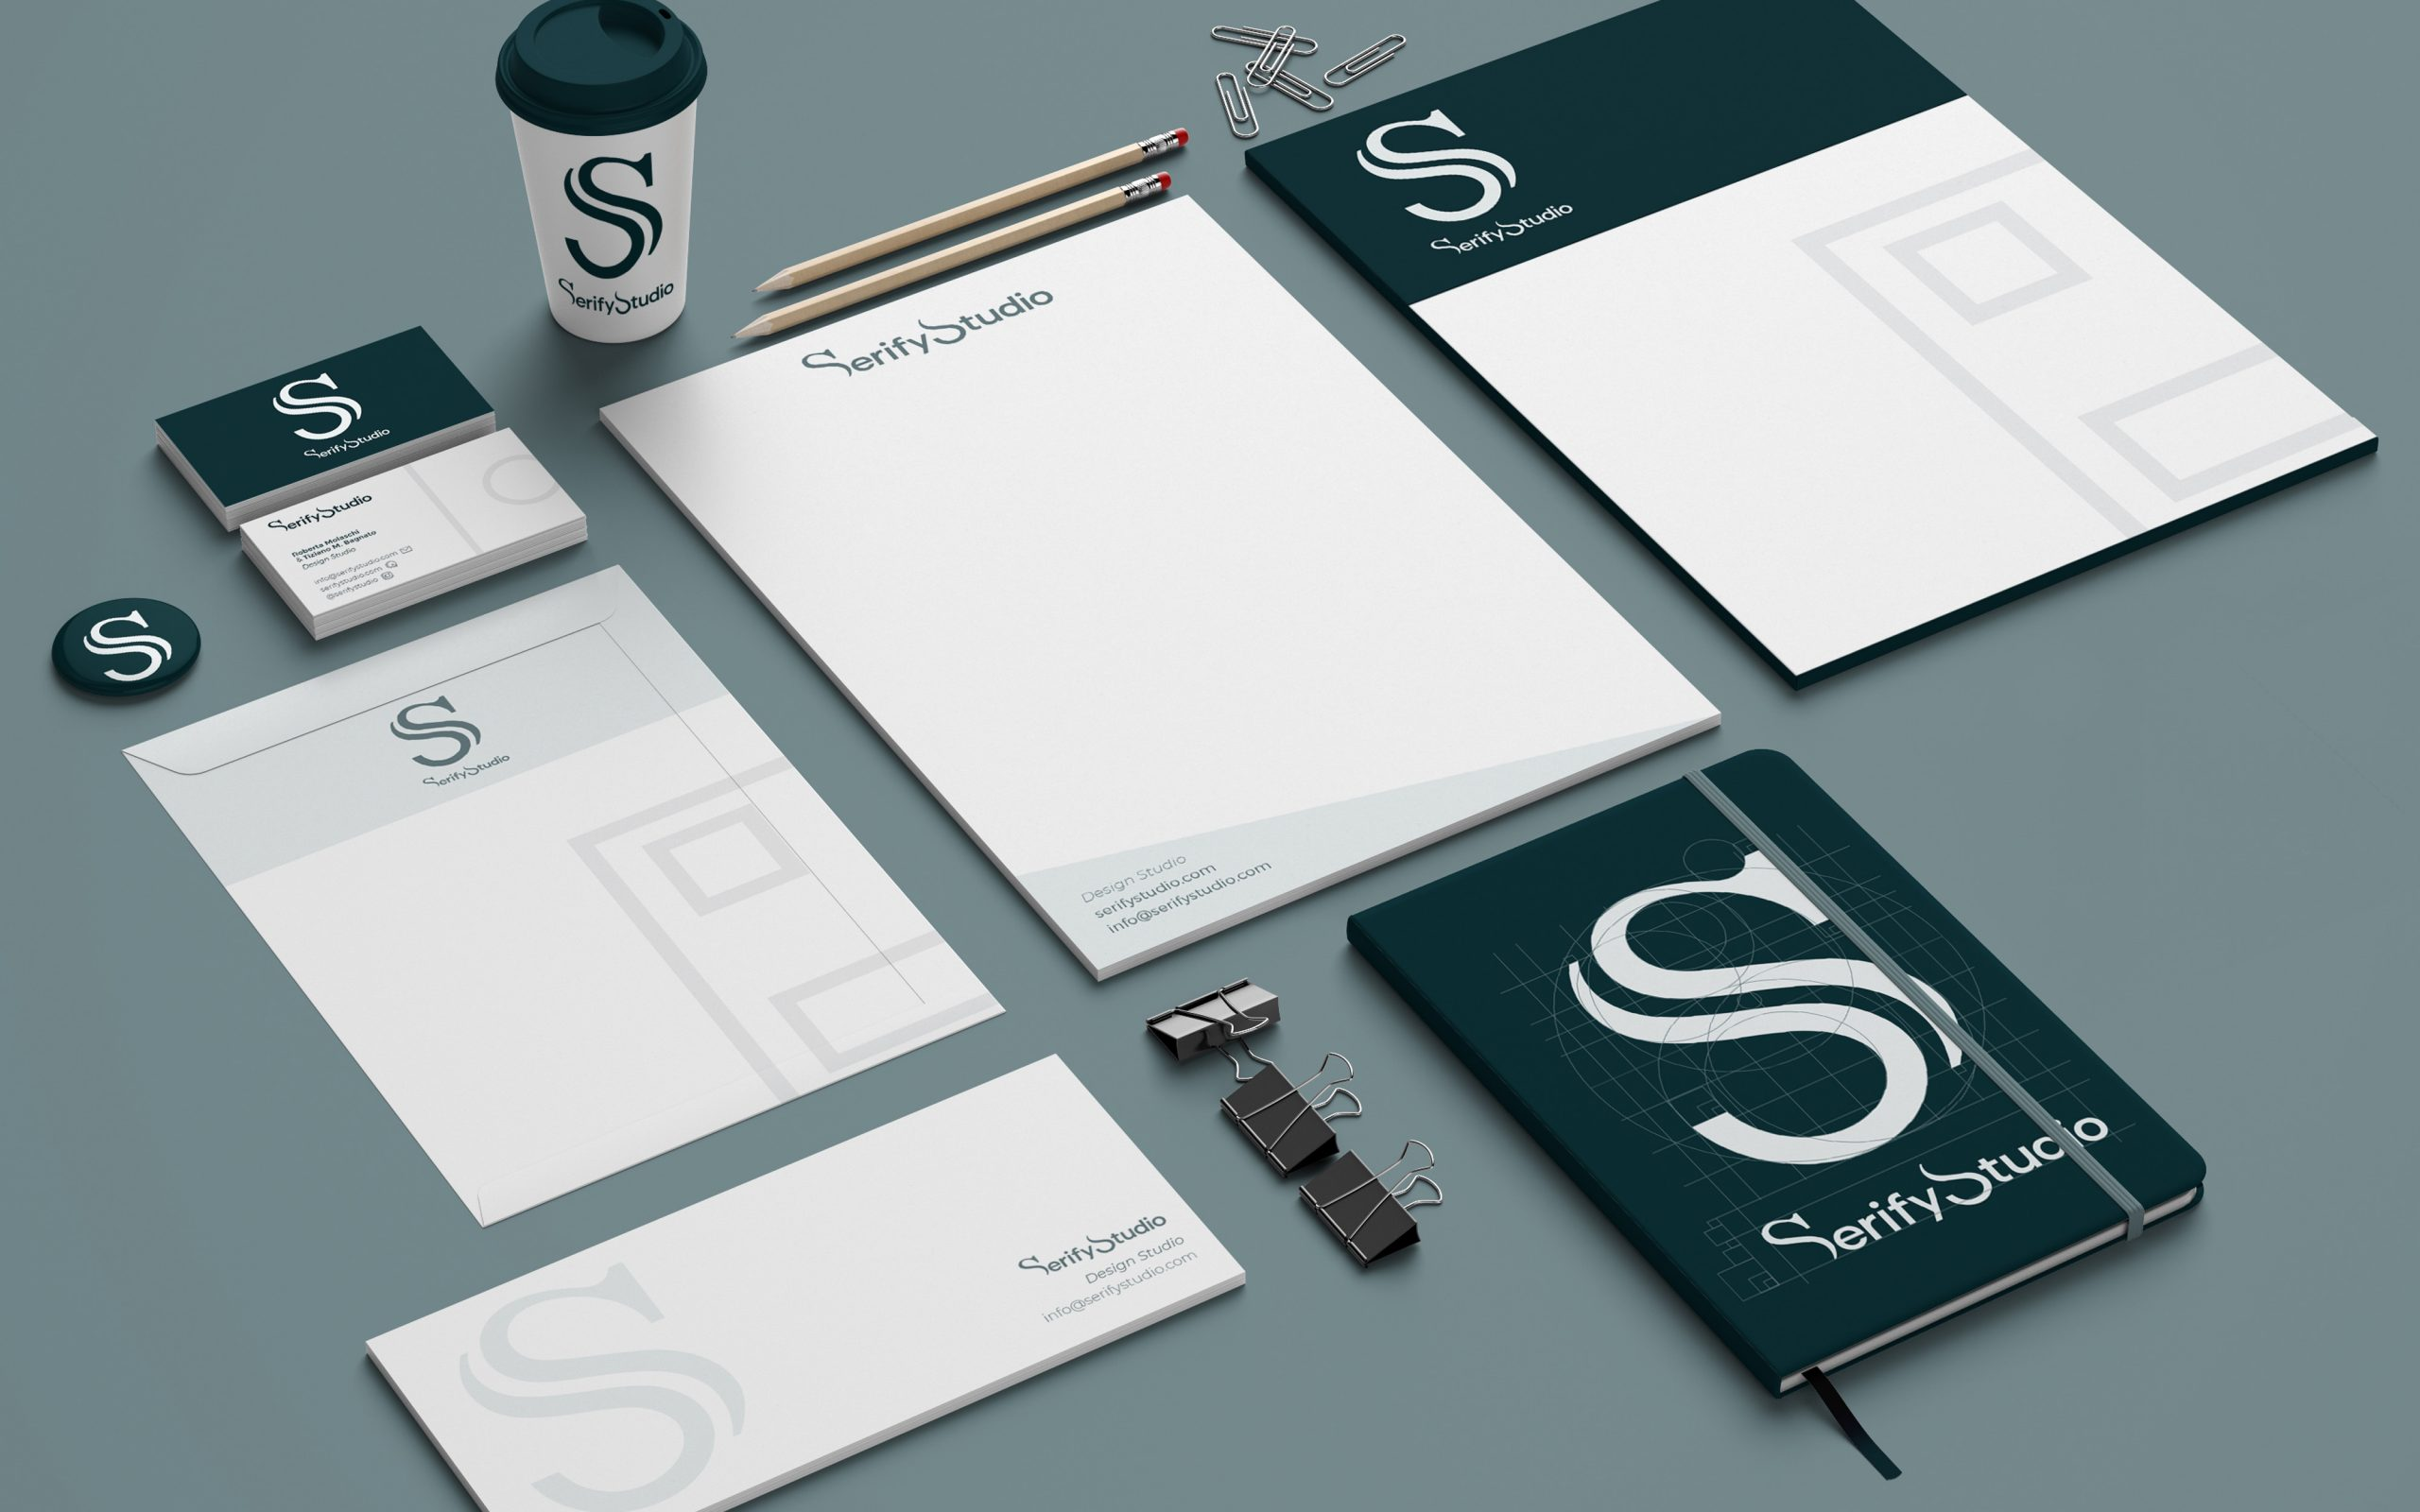 Serify Studio Stationary